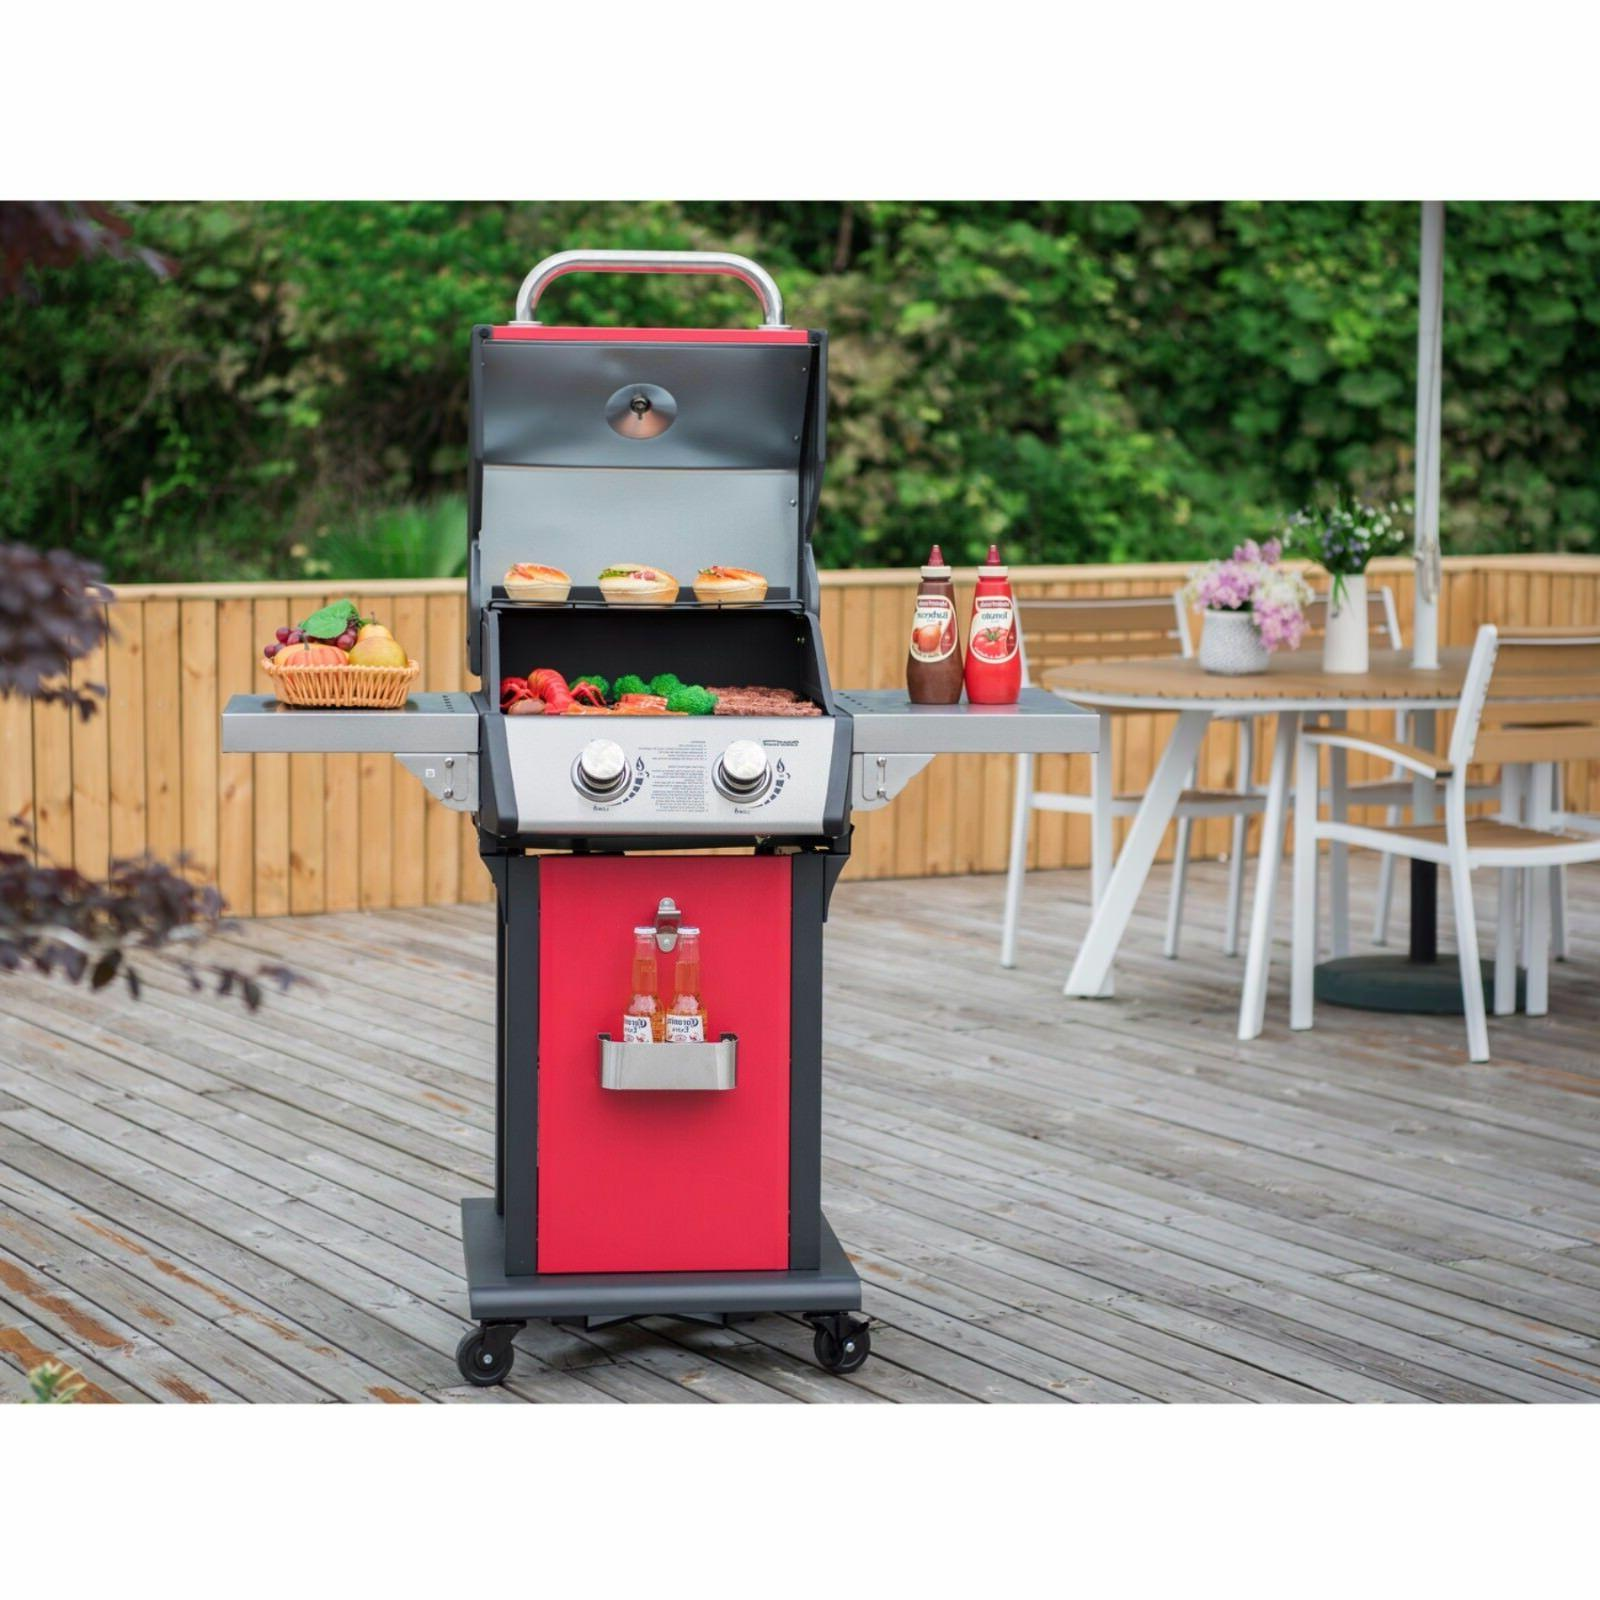 Royal Gourmet Propane Grill 2-Burner Patio Cooking